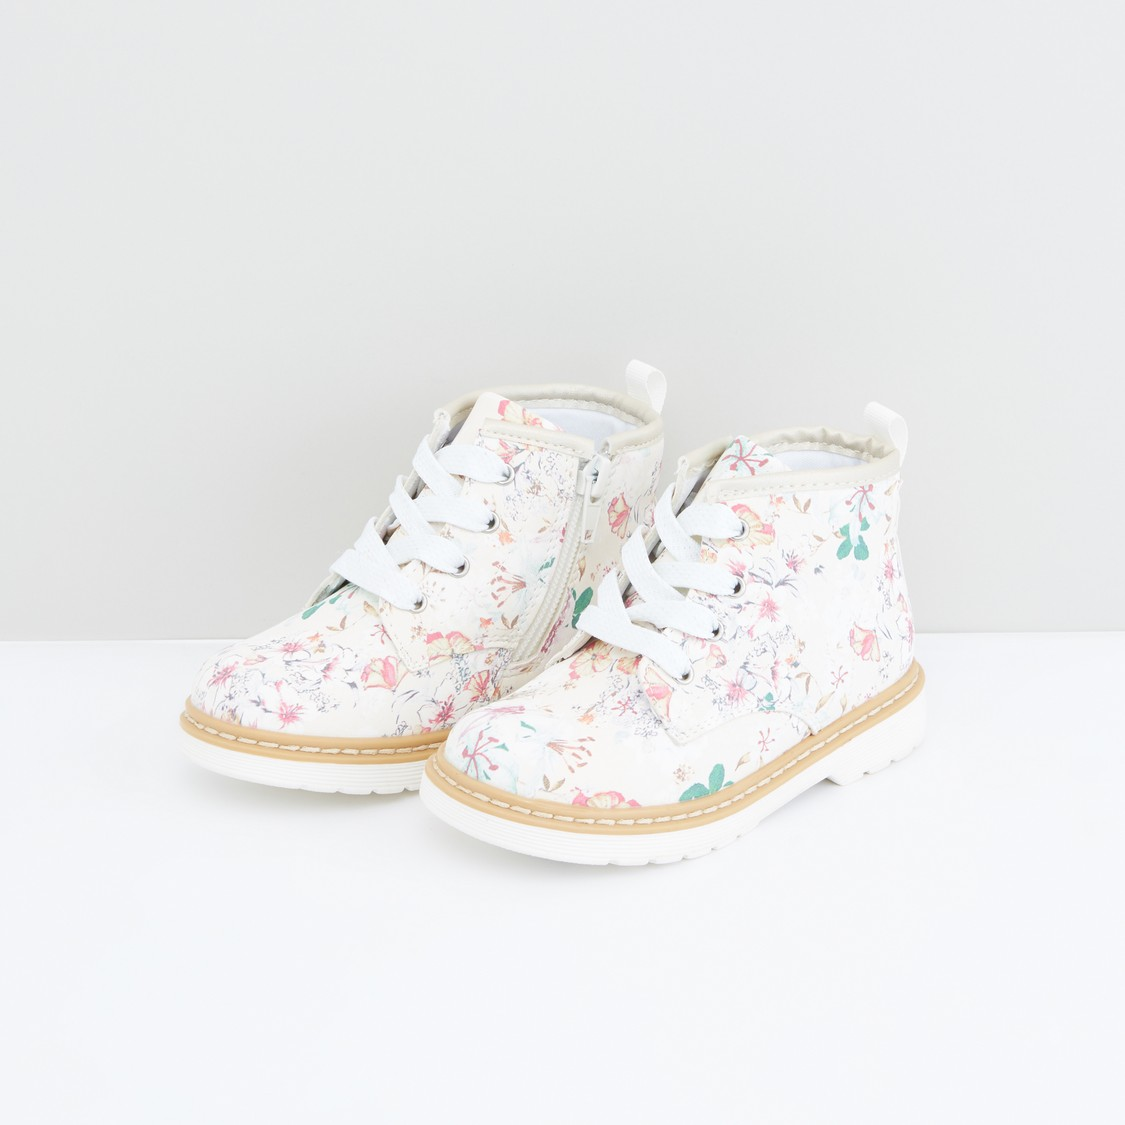 Floral Printed Shoes with Lace Detail and Zip Closure